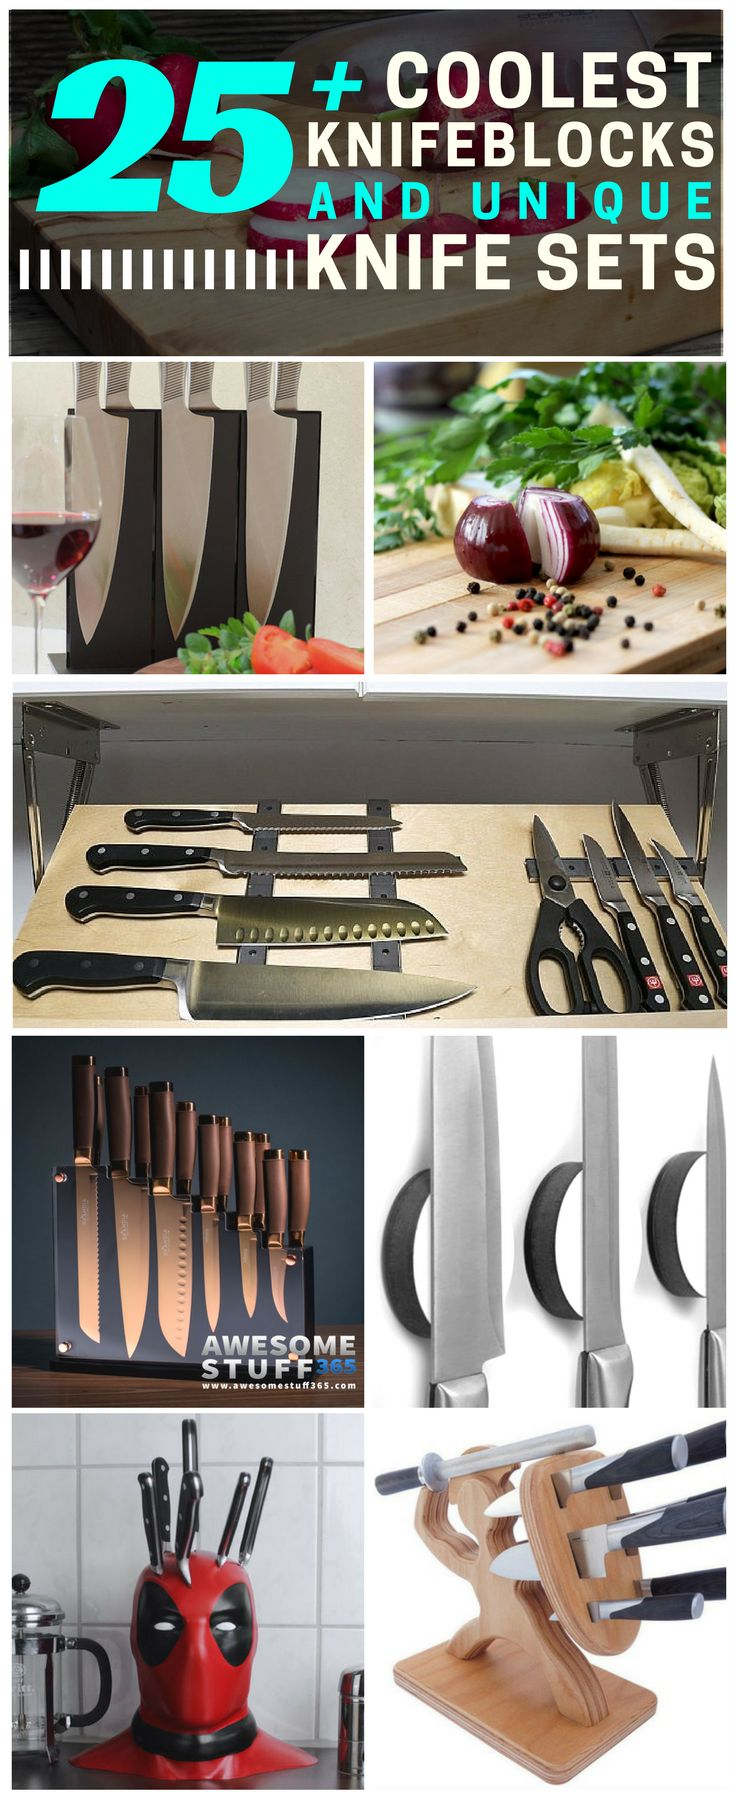 Add a little spice to your kitchen with the coolest knife blocks and unique knife sets on the market! Check these out ⬆⬆⬆